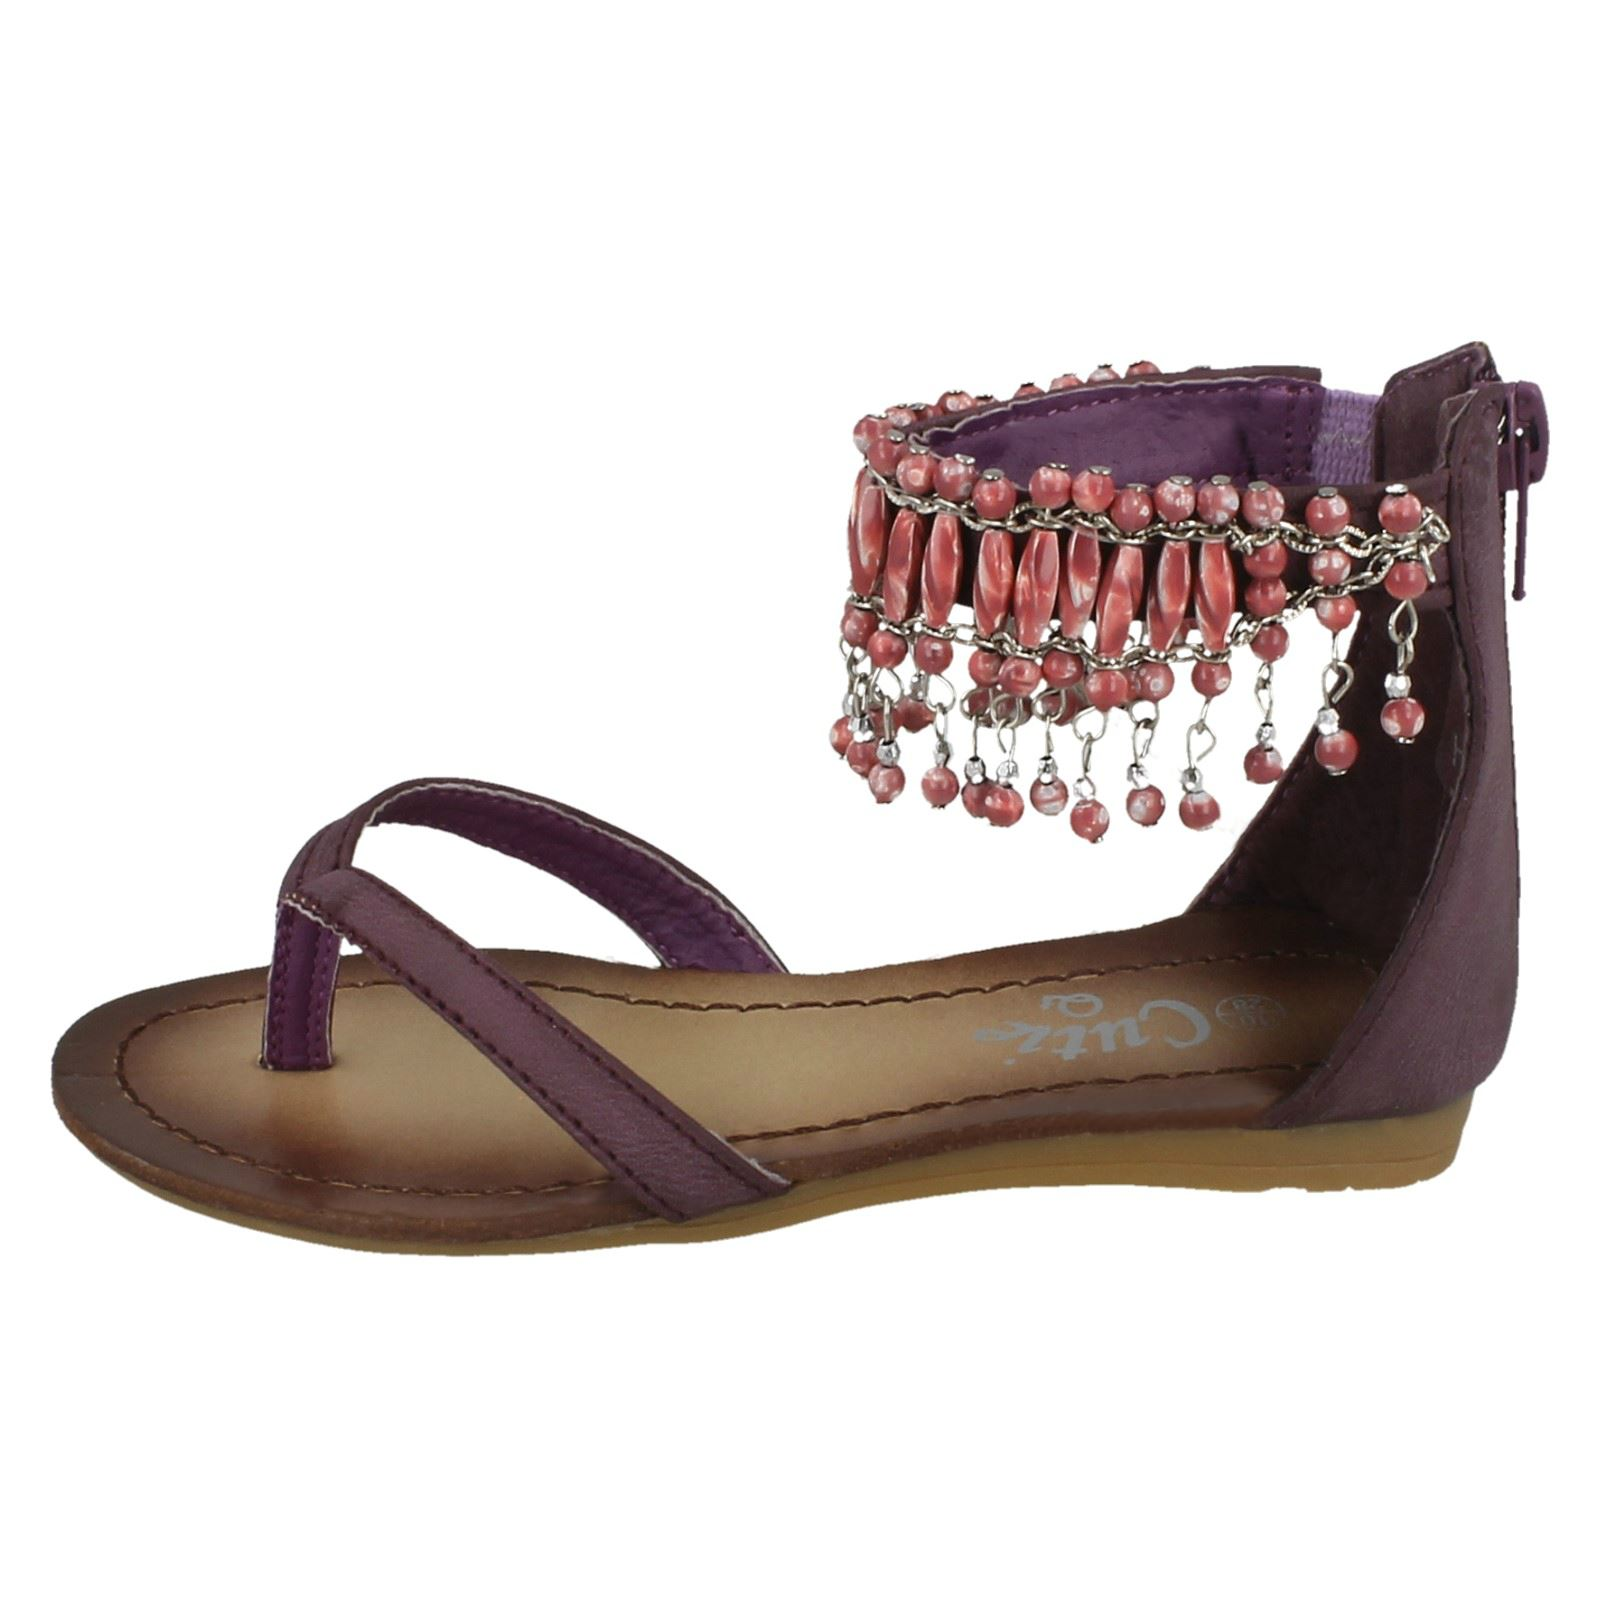 Cutie Girls Beaded Ankle Strap Toe Post Sandals